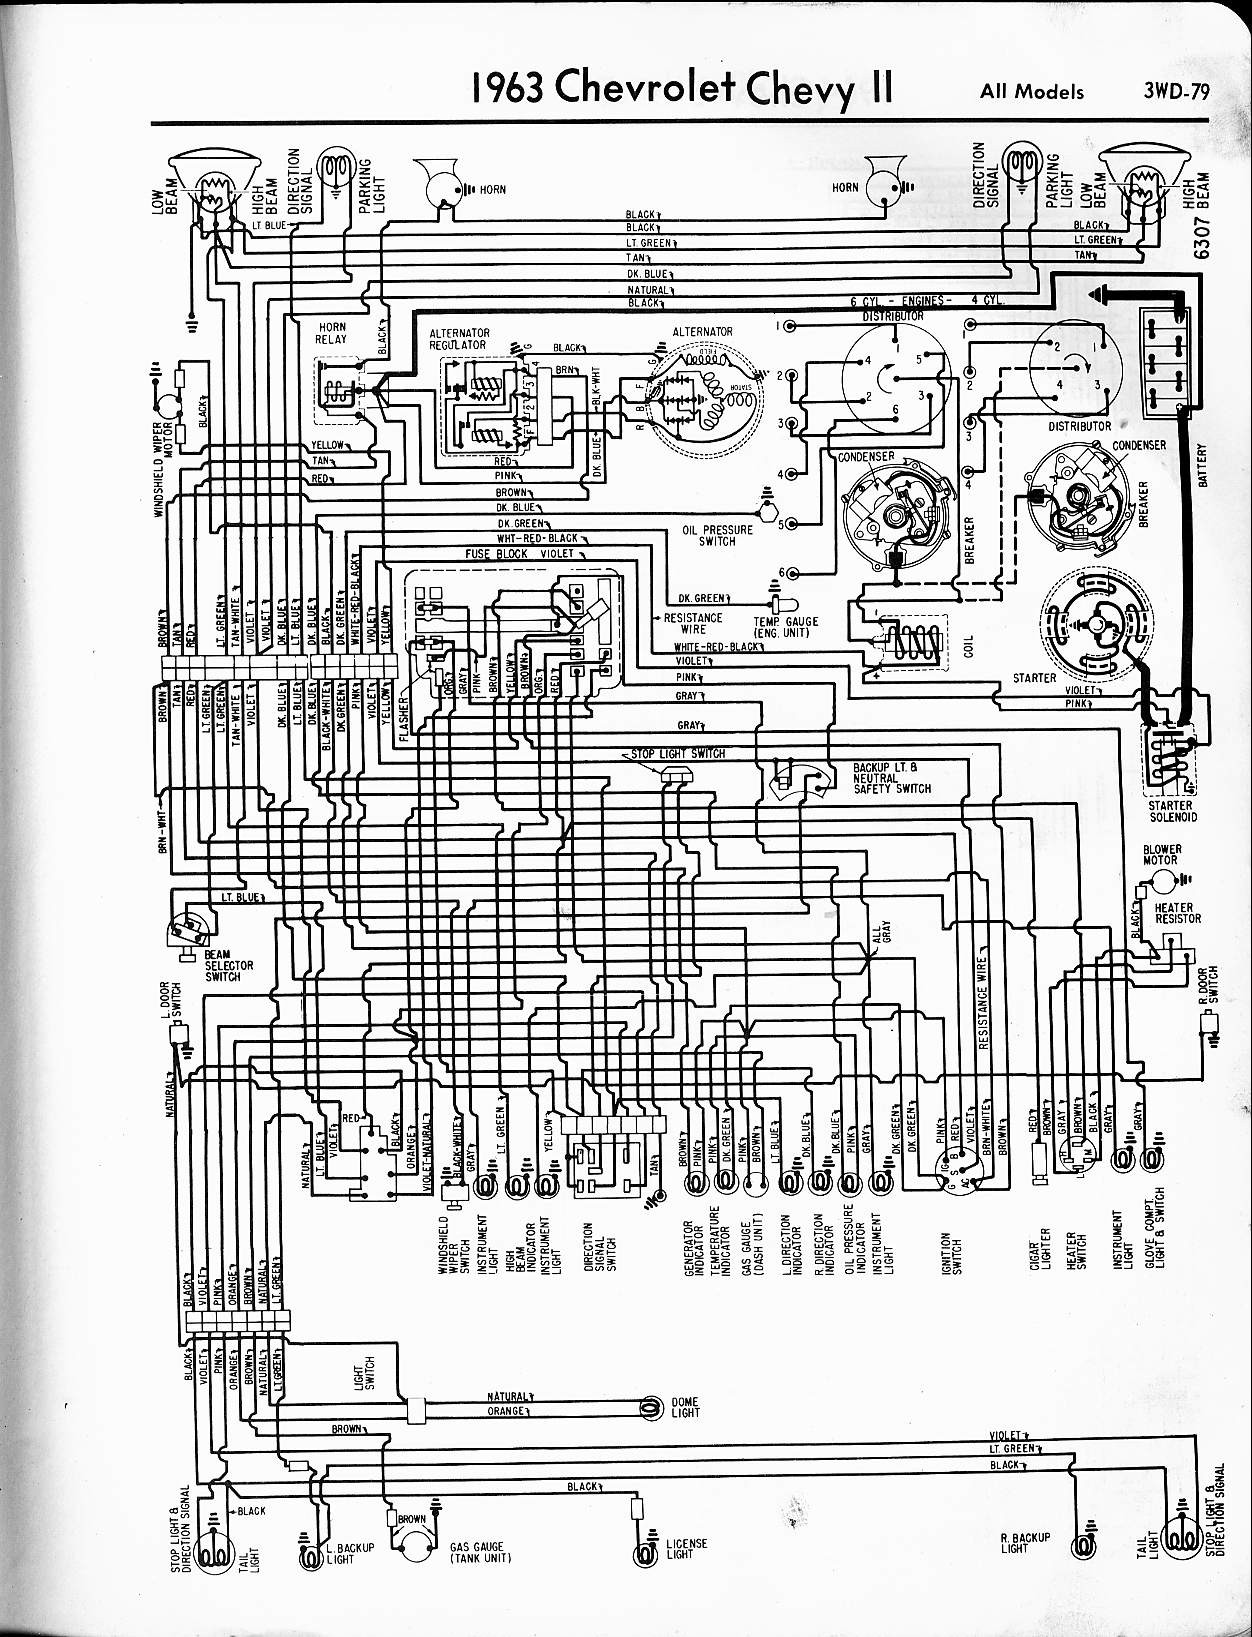 1966 corvair wiring schematic wiring library 1966 nova turn signal wiring diagram electrical work wiring diagram u2022 1966 corvair engine wiring 1965